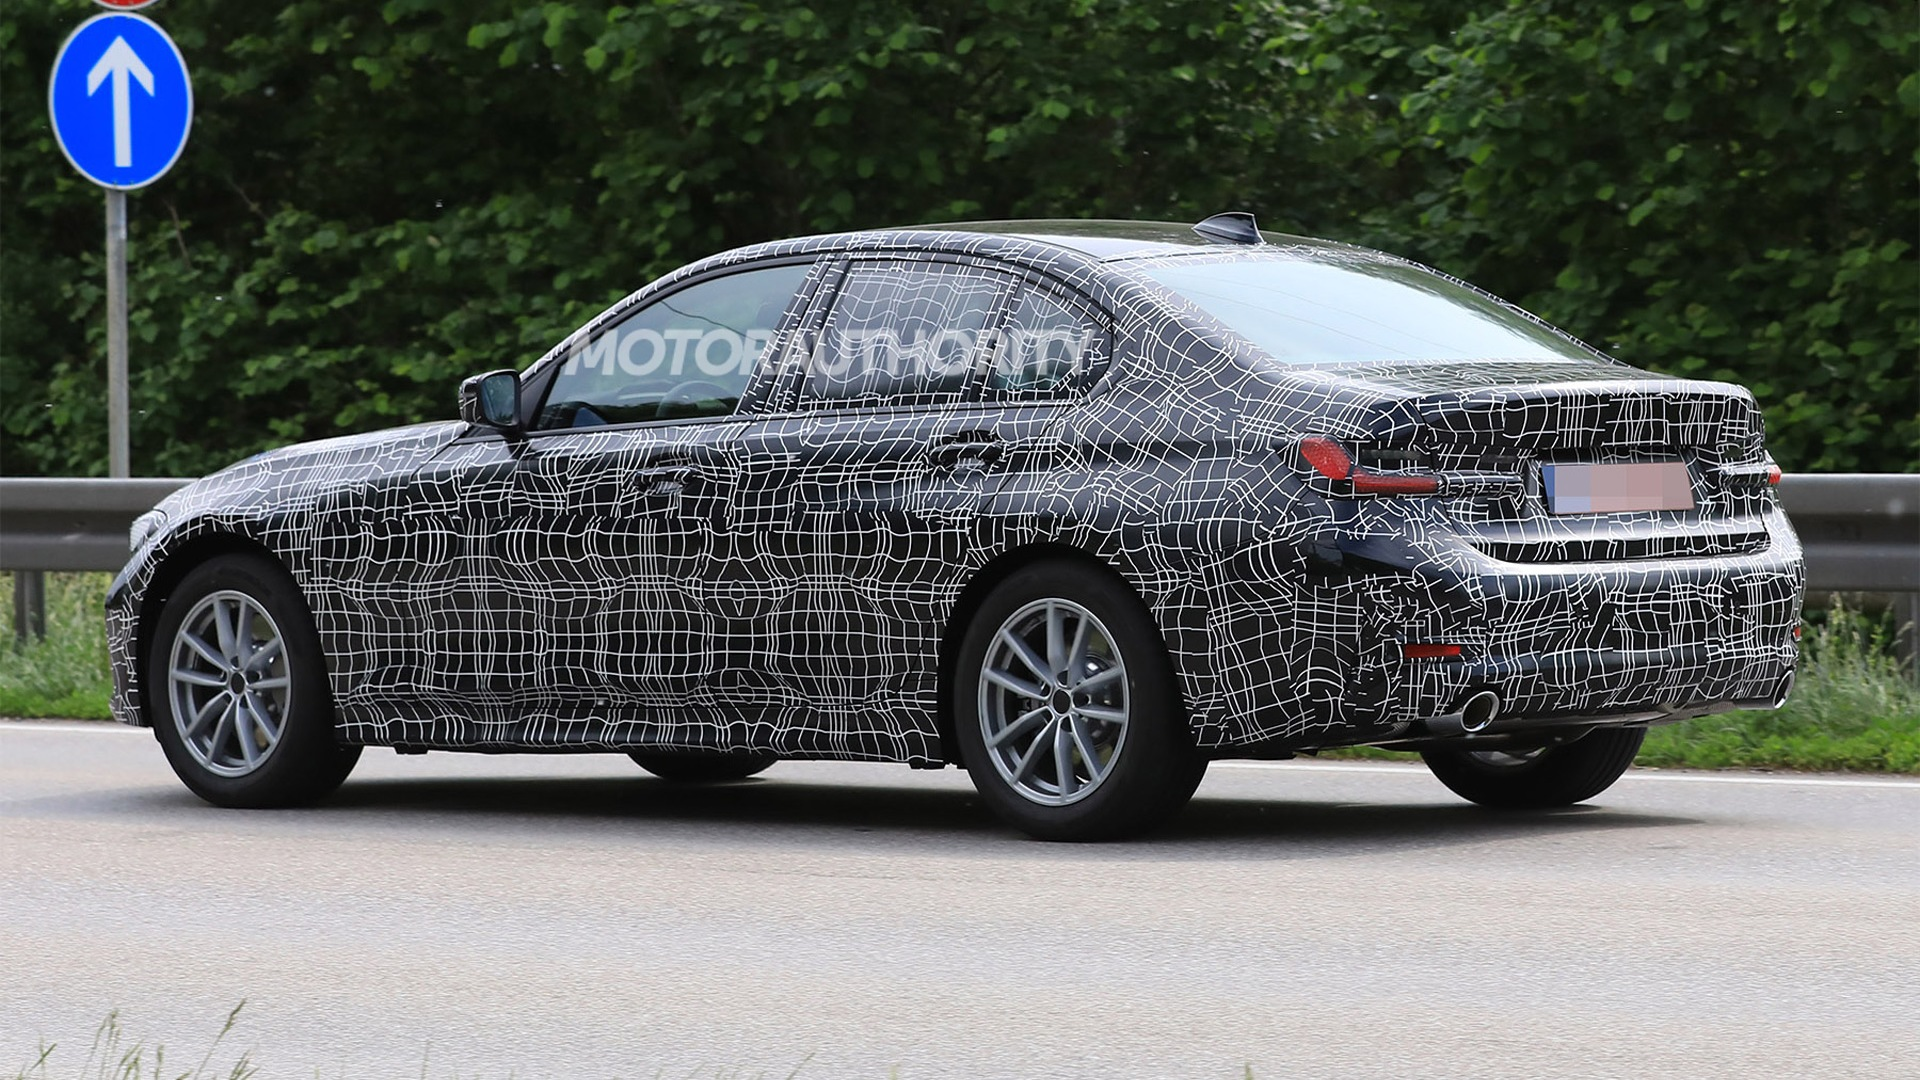 69 New Spy Shots BMW 3 Series Exterior